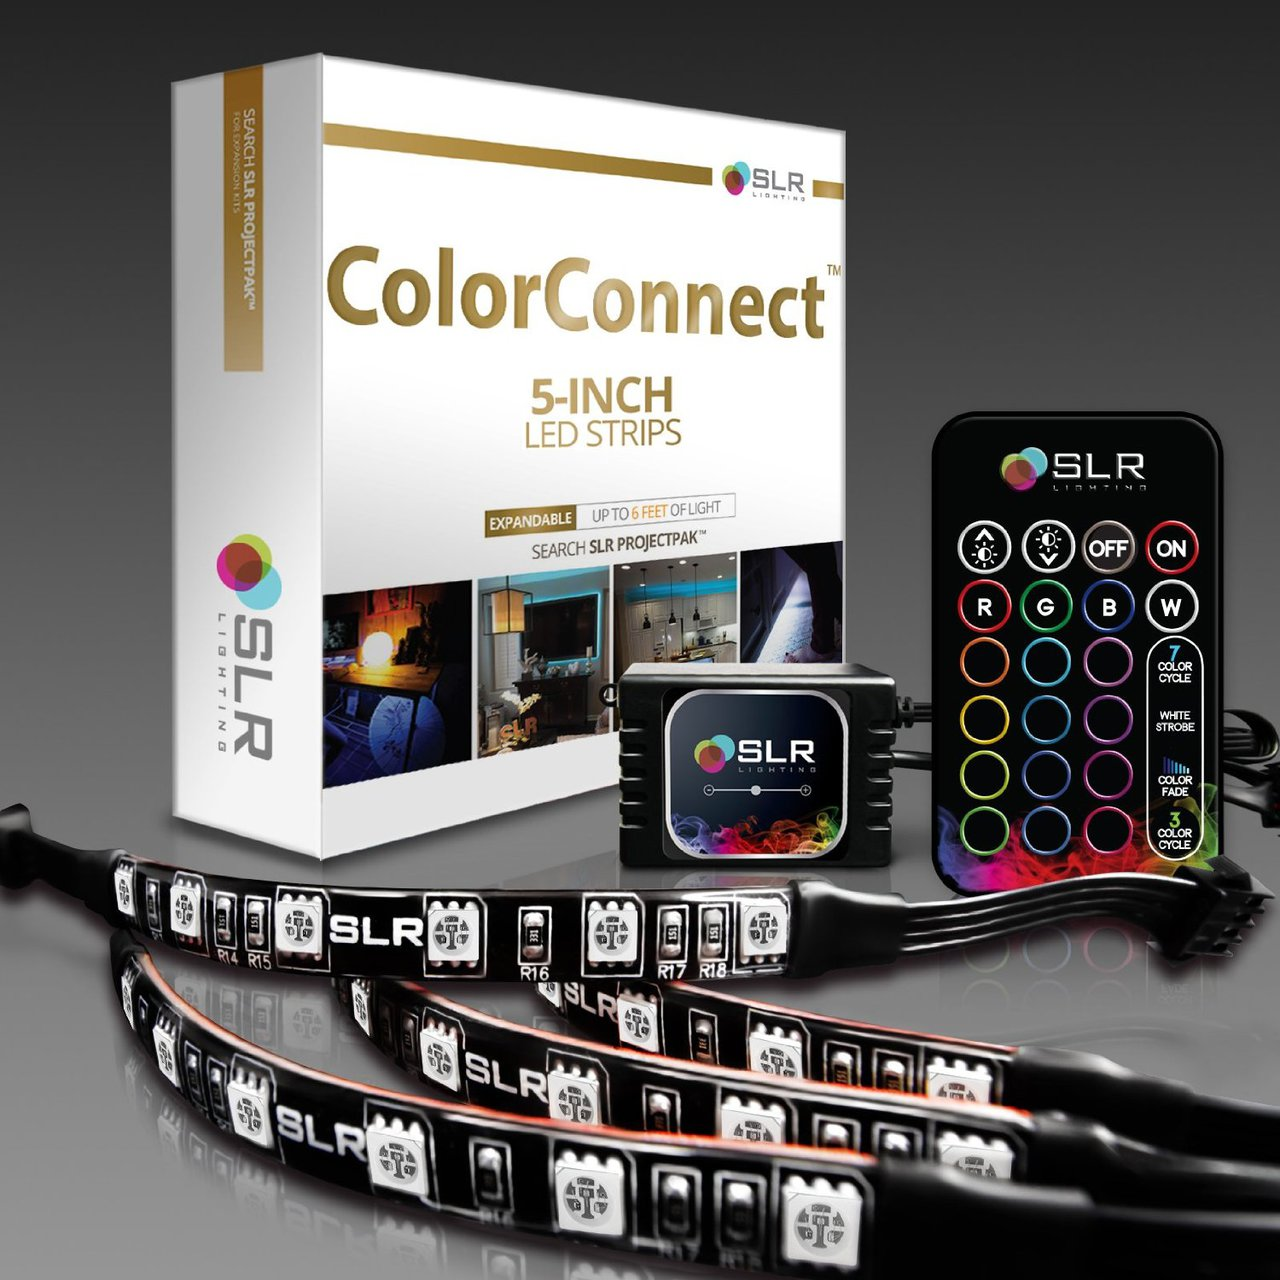 Colorconnect light kit with 5 inch led strips simple living redefined rgb led light kit for home aloadofball Images